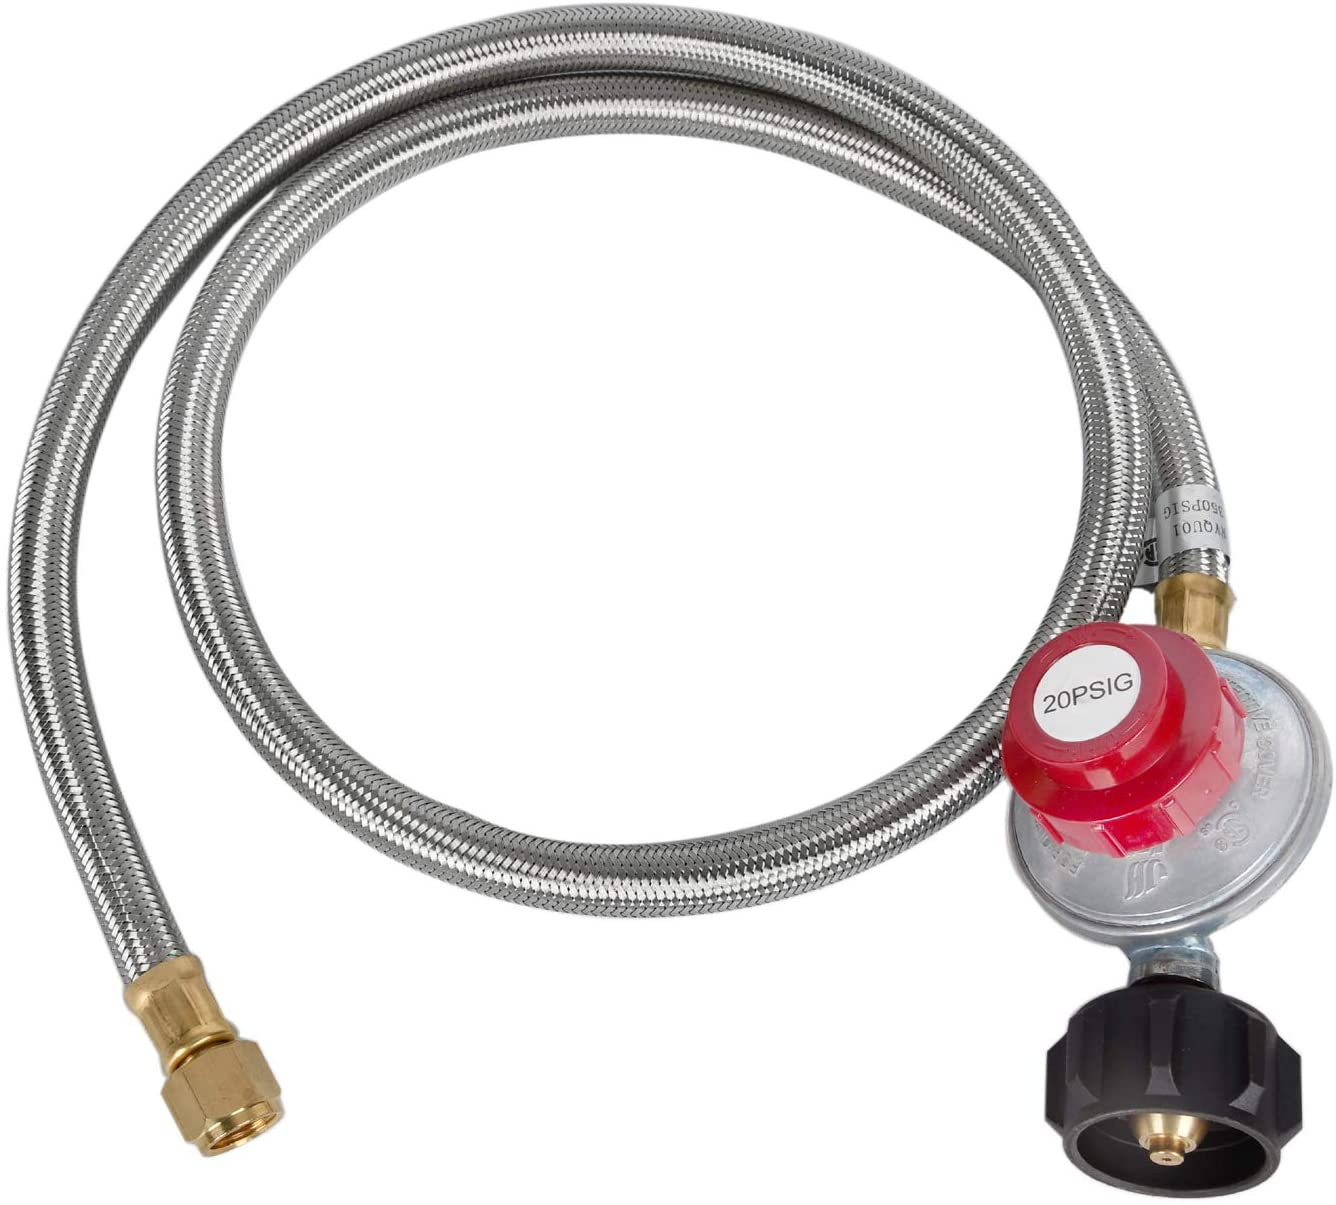 GasSaf 5 Feet Stainless Steel Braided 20 PSI Adjustable Propane Regulator Hose with QCC-1/Type,Gas Grill LP Regulator for Burner, Turkey Fryer, Forge, Smoker and More.